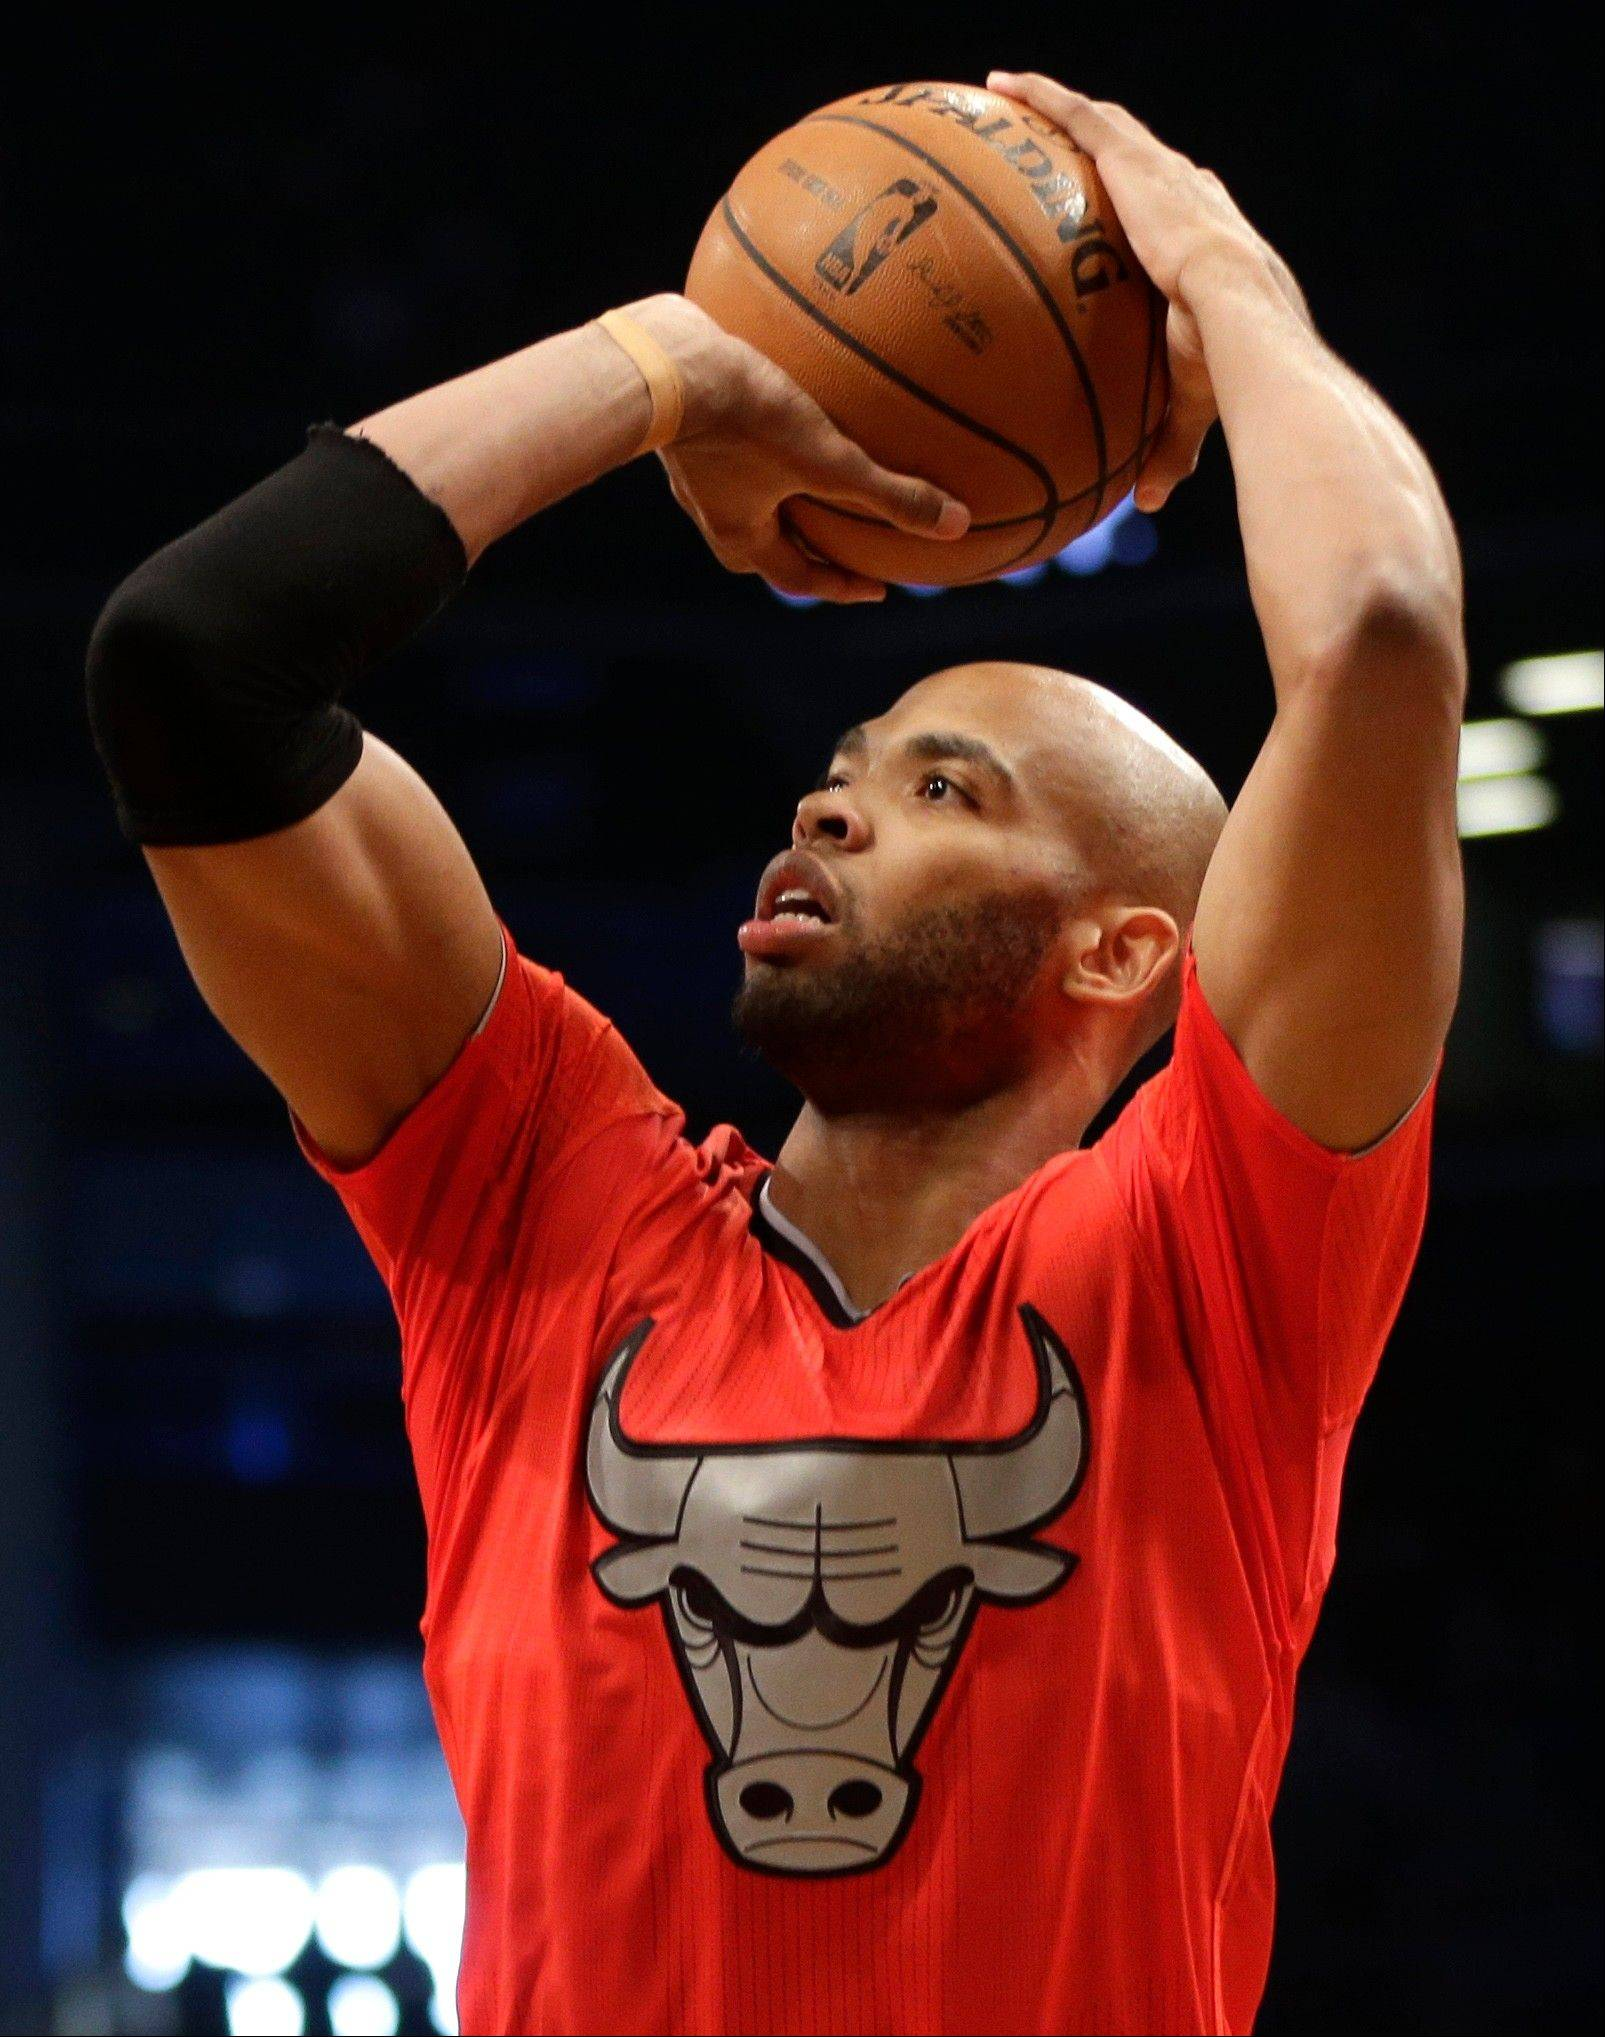 Chicago Bulls' Taj Gibson lines up a shot during the first half of the NBA basketball game against the Brooklyn Nets at the Barclays Center Wednesday in New York.